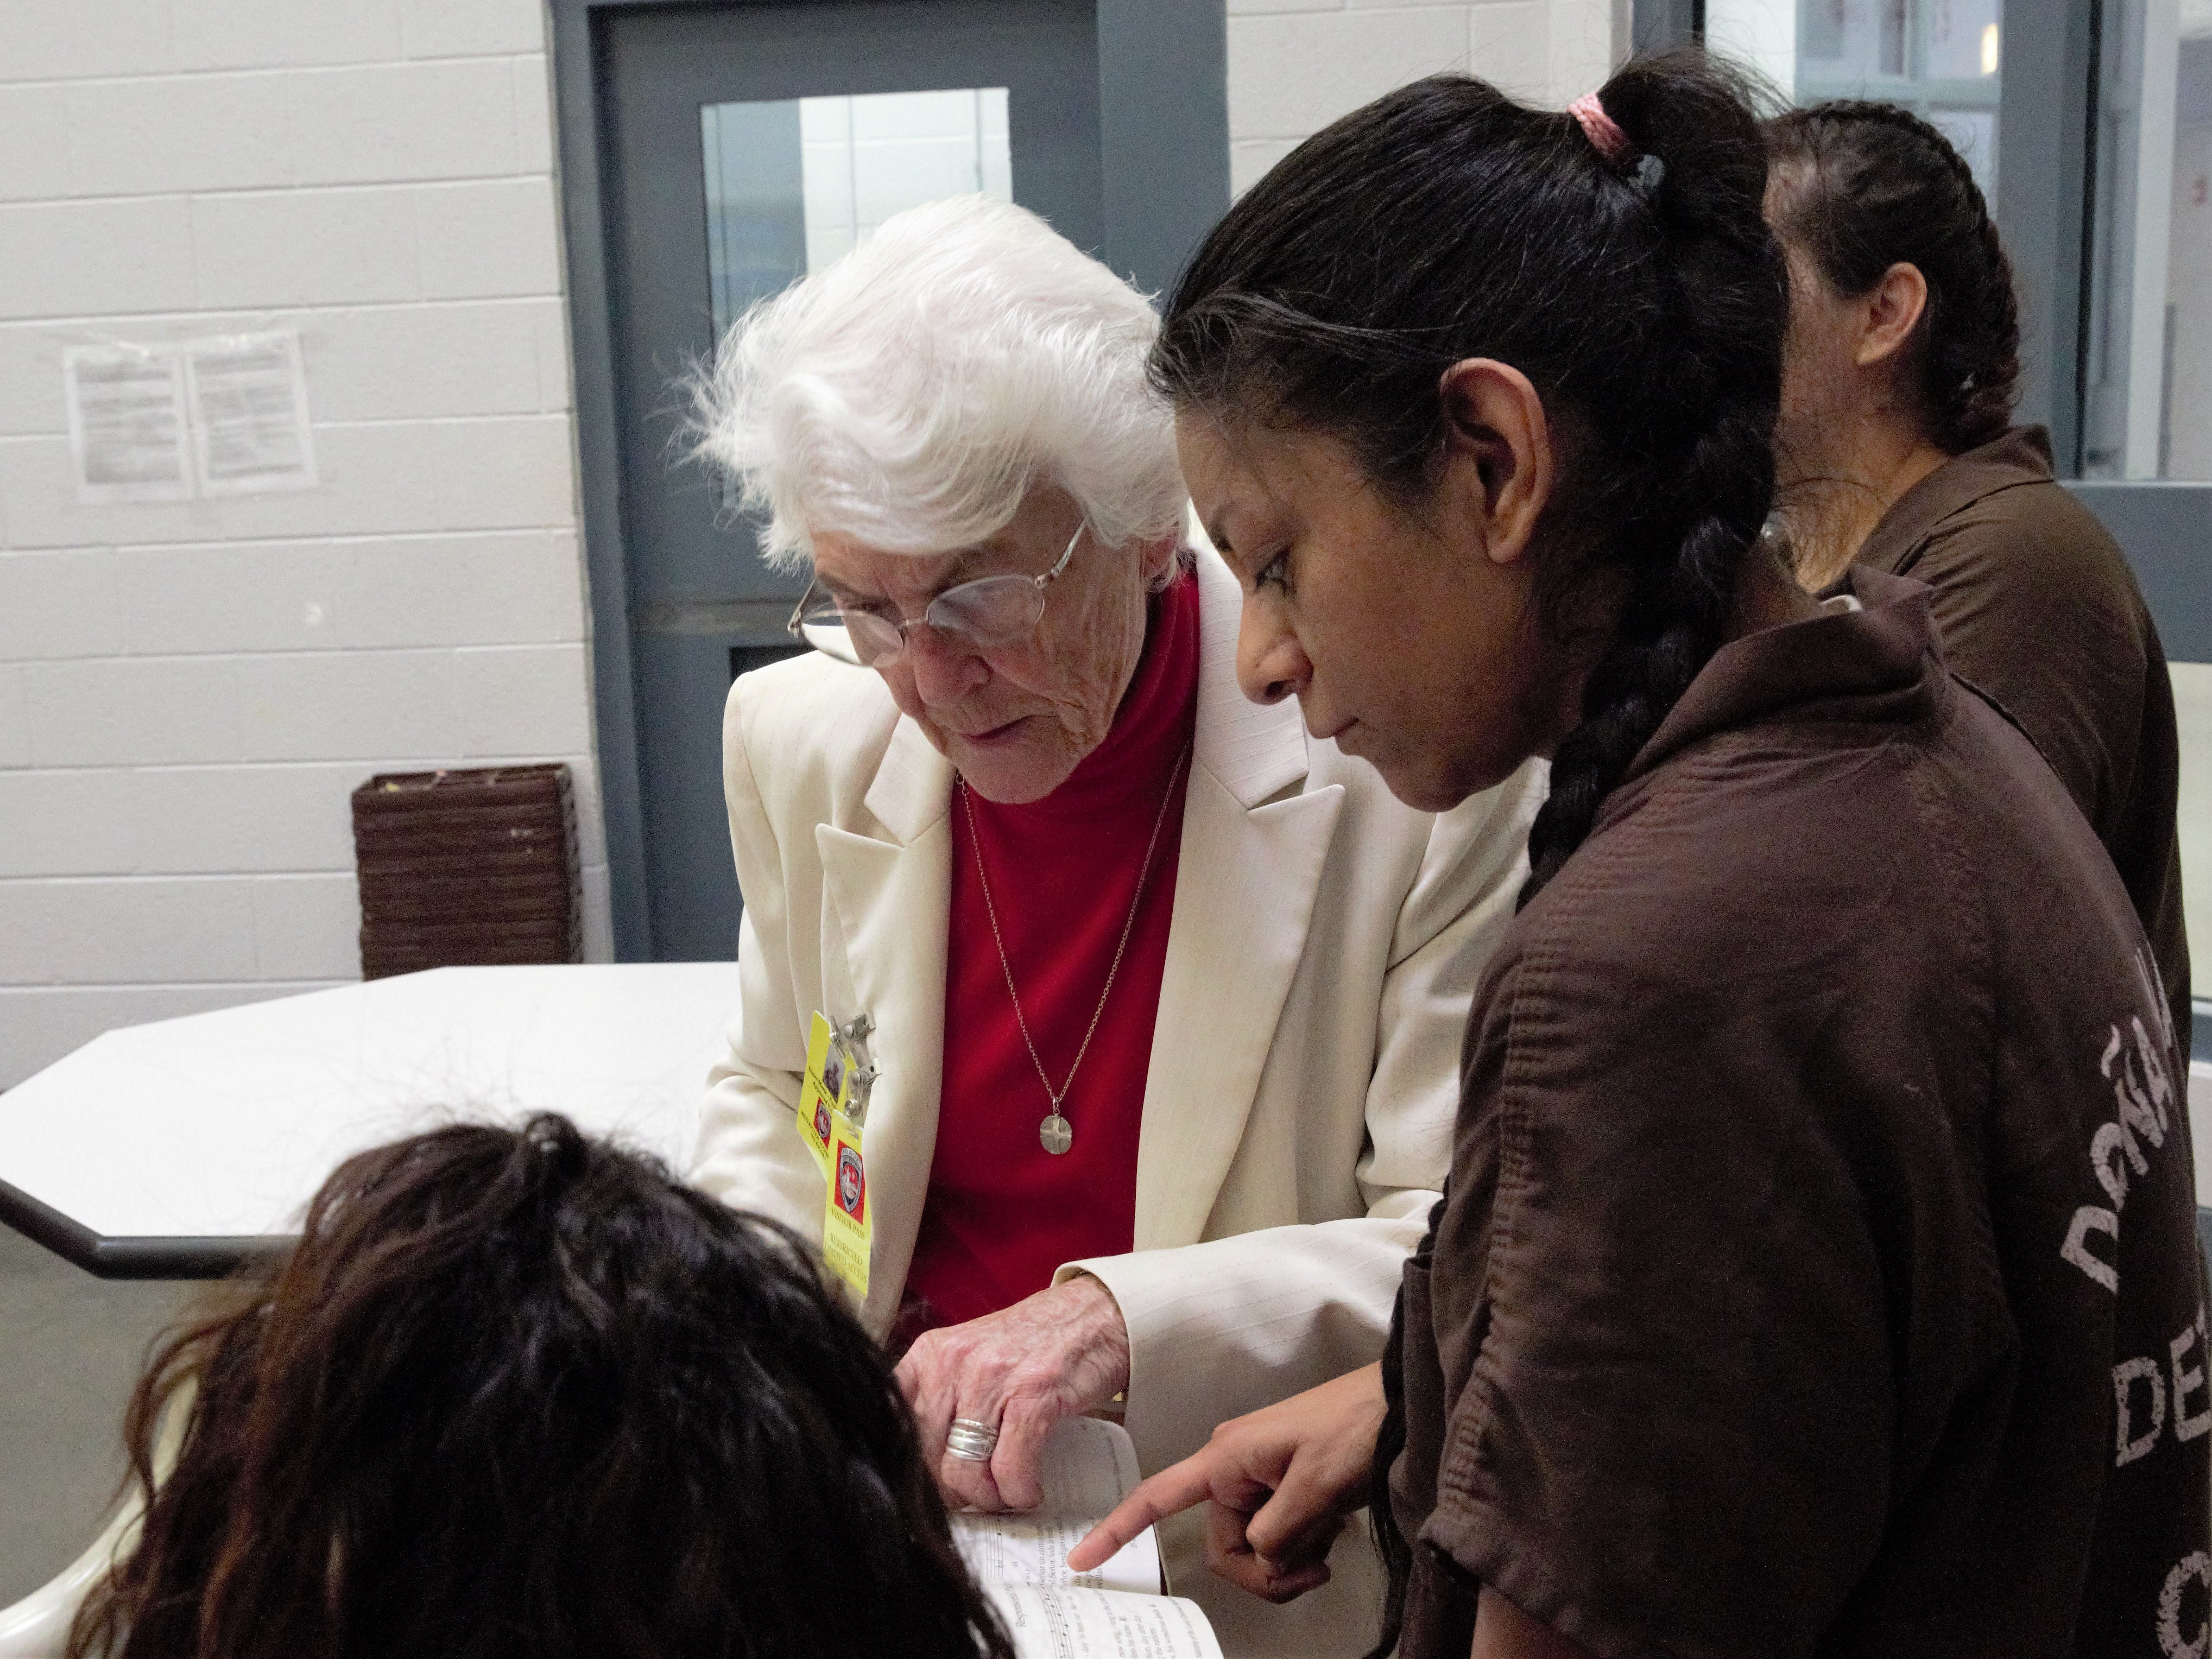 Sister Marie-Paule Willem, left, helps an inmate find her place in a prayer and song book on Tuesday, Dec. 25, 2018 in the Doña Ana County Detention Center in Las Cruces.